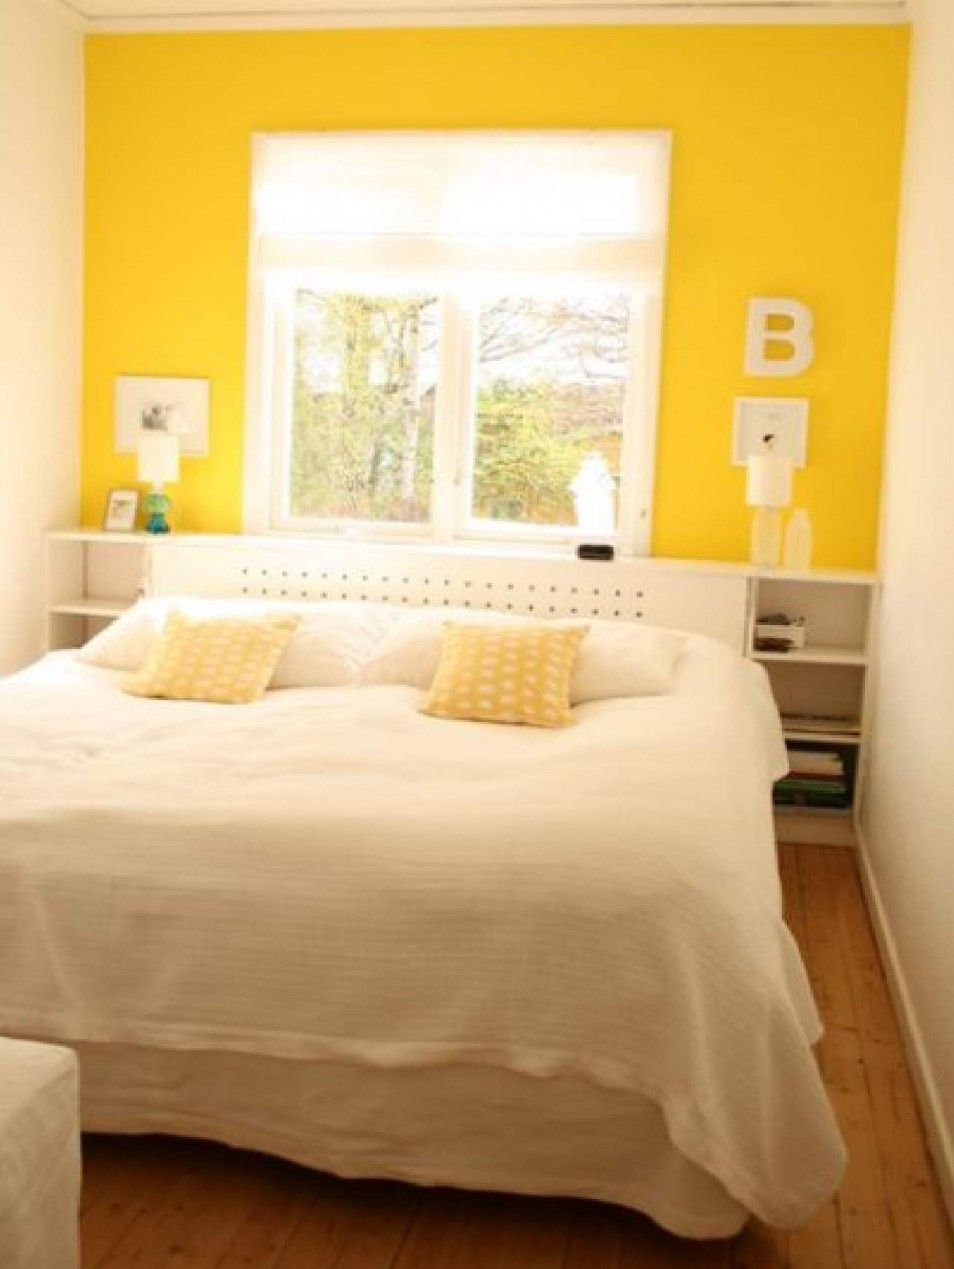 Green And Yellow Room Bedroom Image Bright Atmosphere In Sweet ...